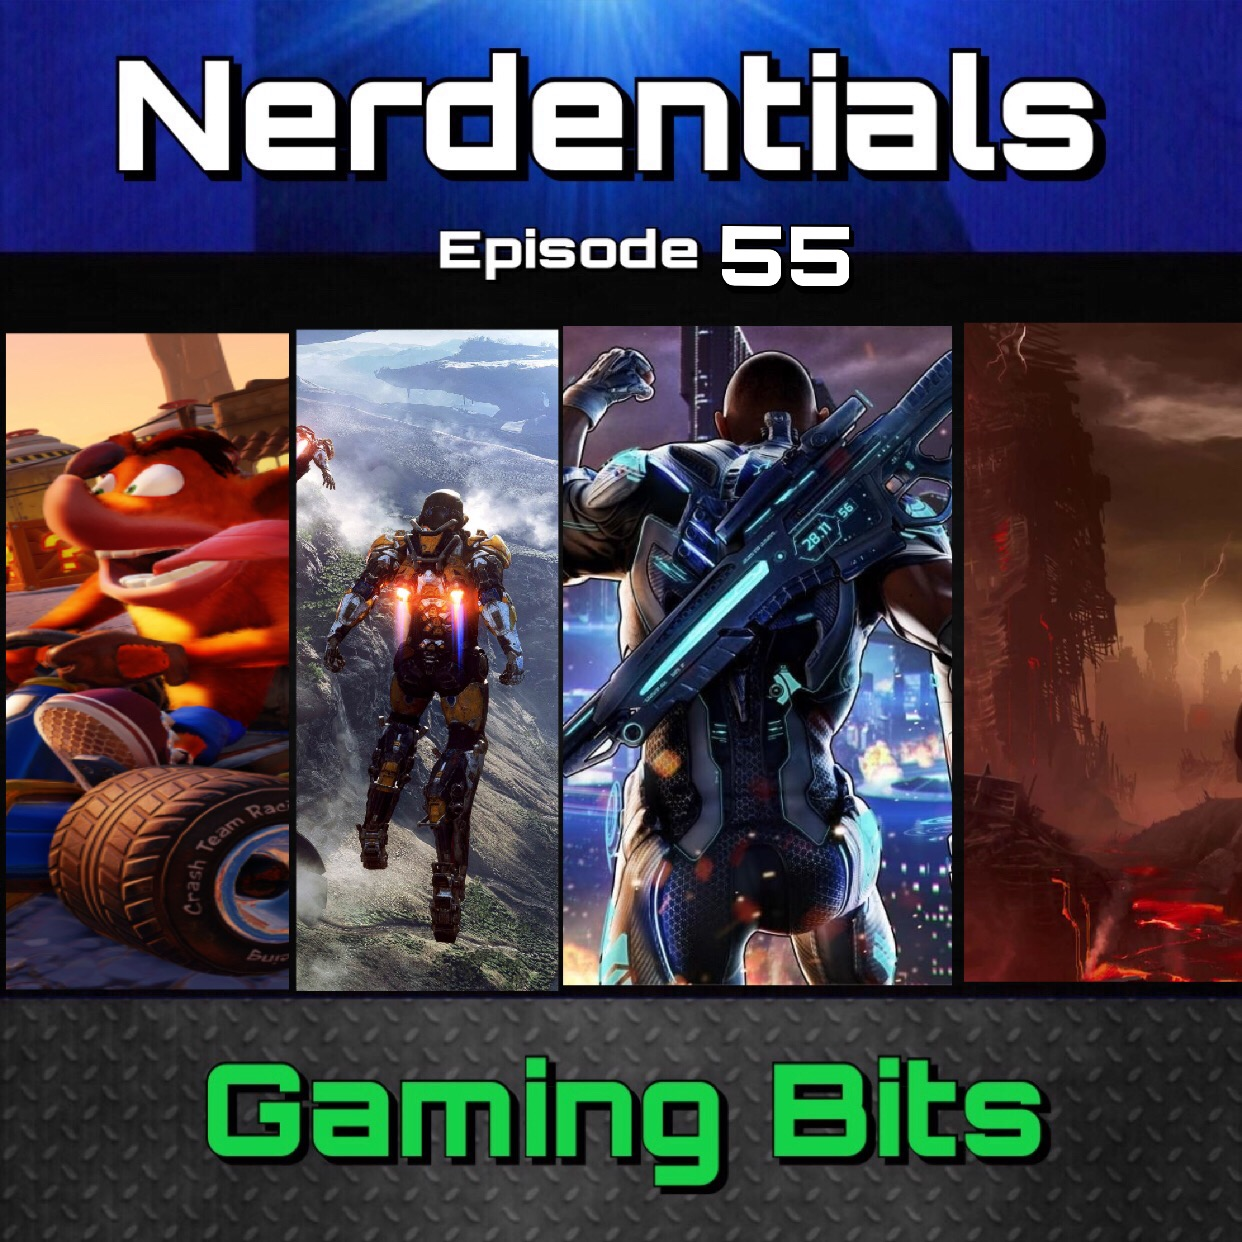 - Welcome to Nerdentials! Your weekly dose of the nerdy essentials. Covering Film, TV, Video Games and Comics.This Week it's a double episode of the gaming conversation! Your Hosts Joe and Nick cover our most anticipated picks in video games for 2019!